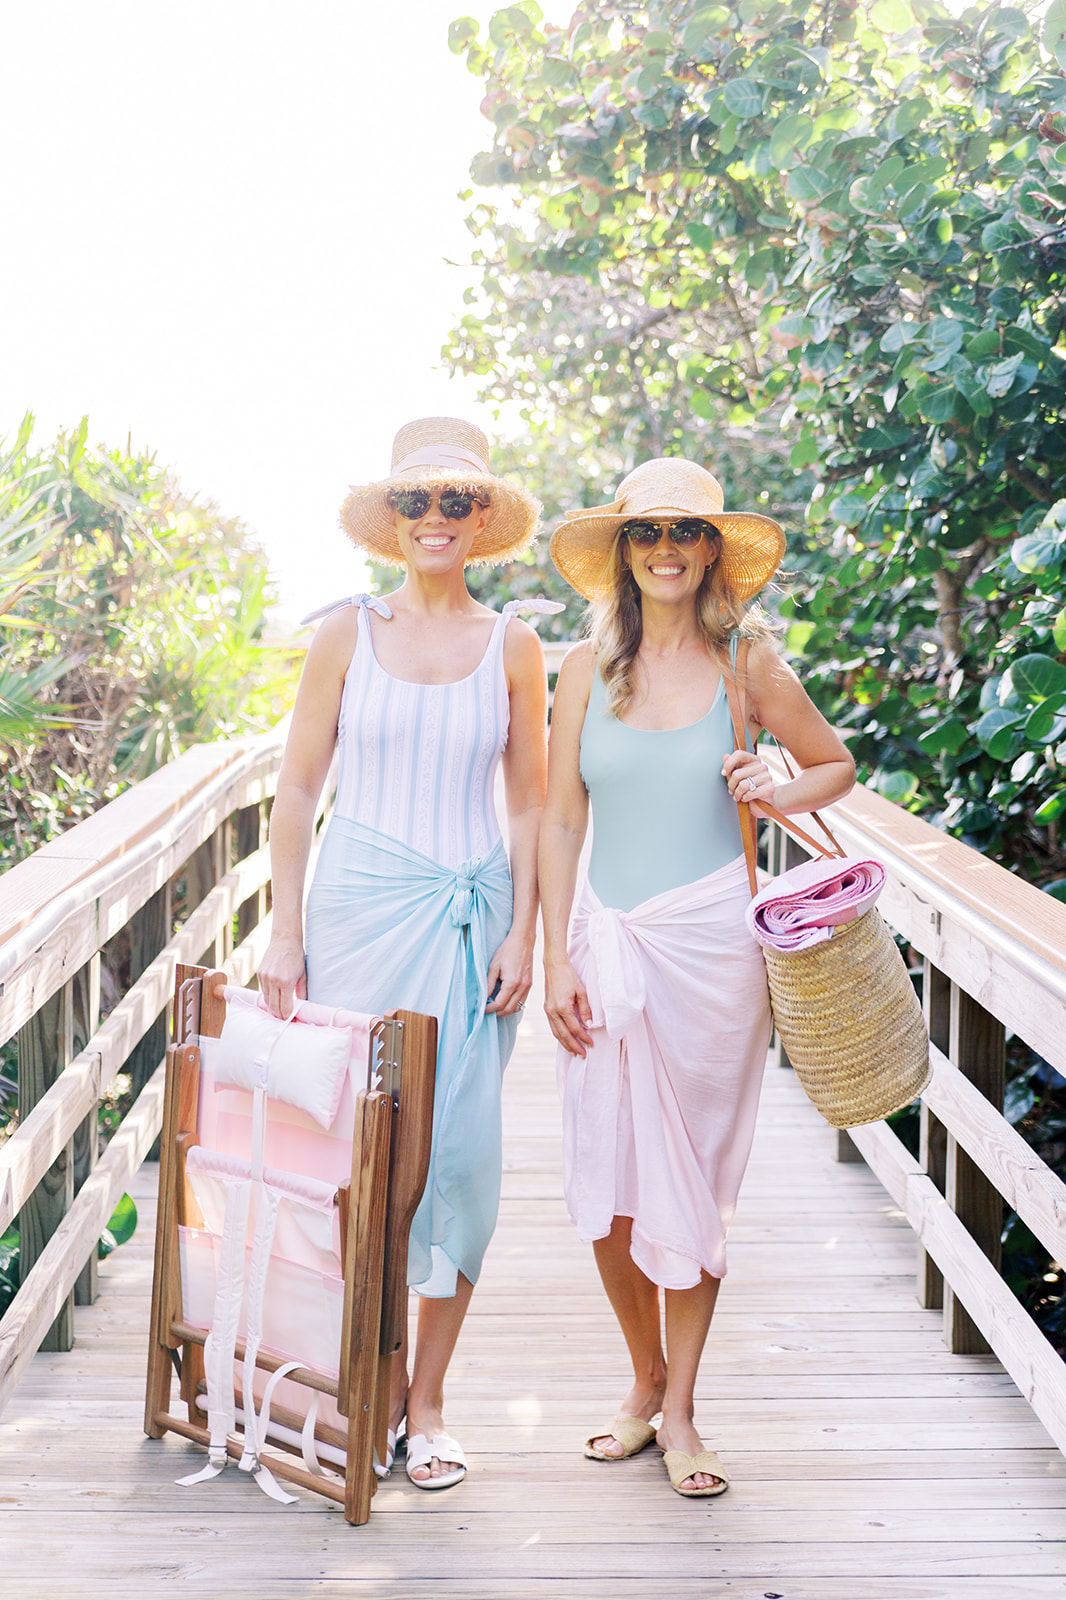 Holiday: Beach Gift Guide with Palm Beach Lately